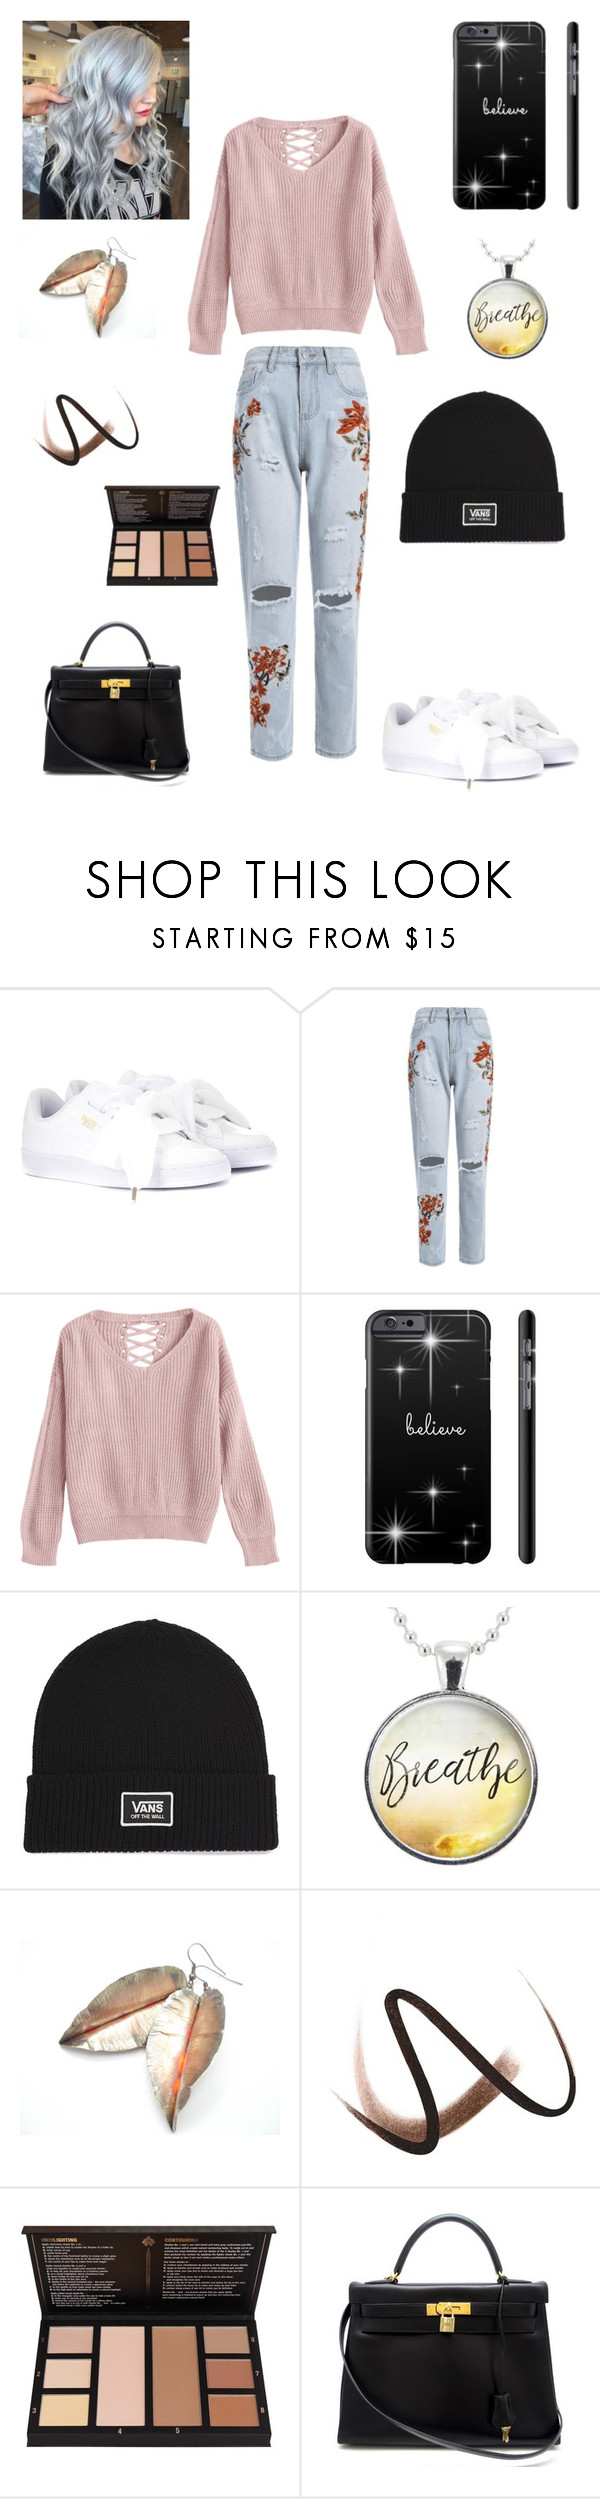 """Sans titre #2540"" by amandine-collet ❤ liked on Polyvore featuring Puma, Vans, Burberry and Hermès"